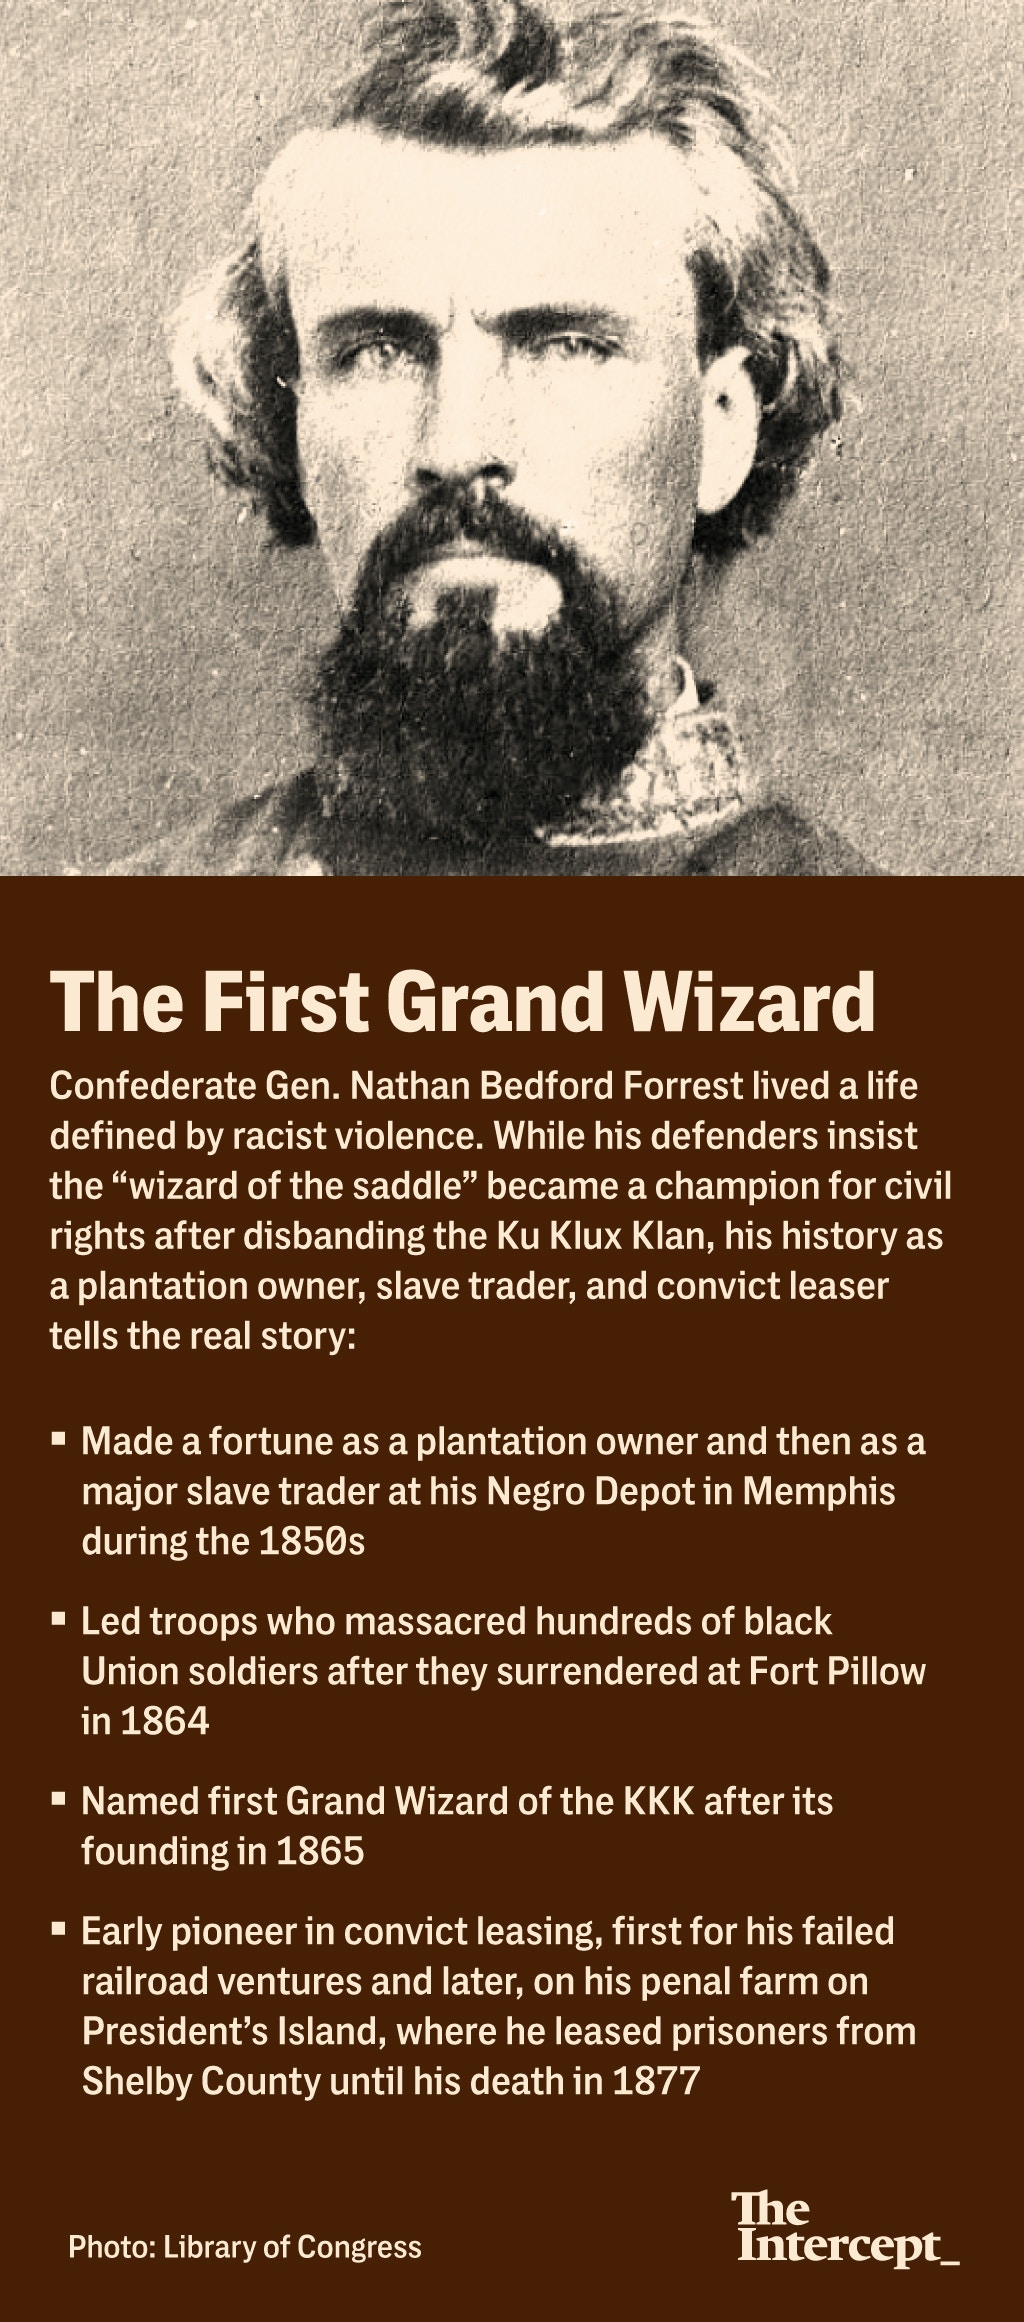 Profile of Nathan Bedford Forrest